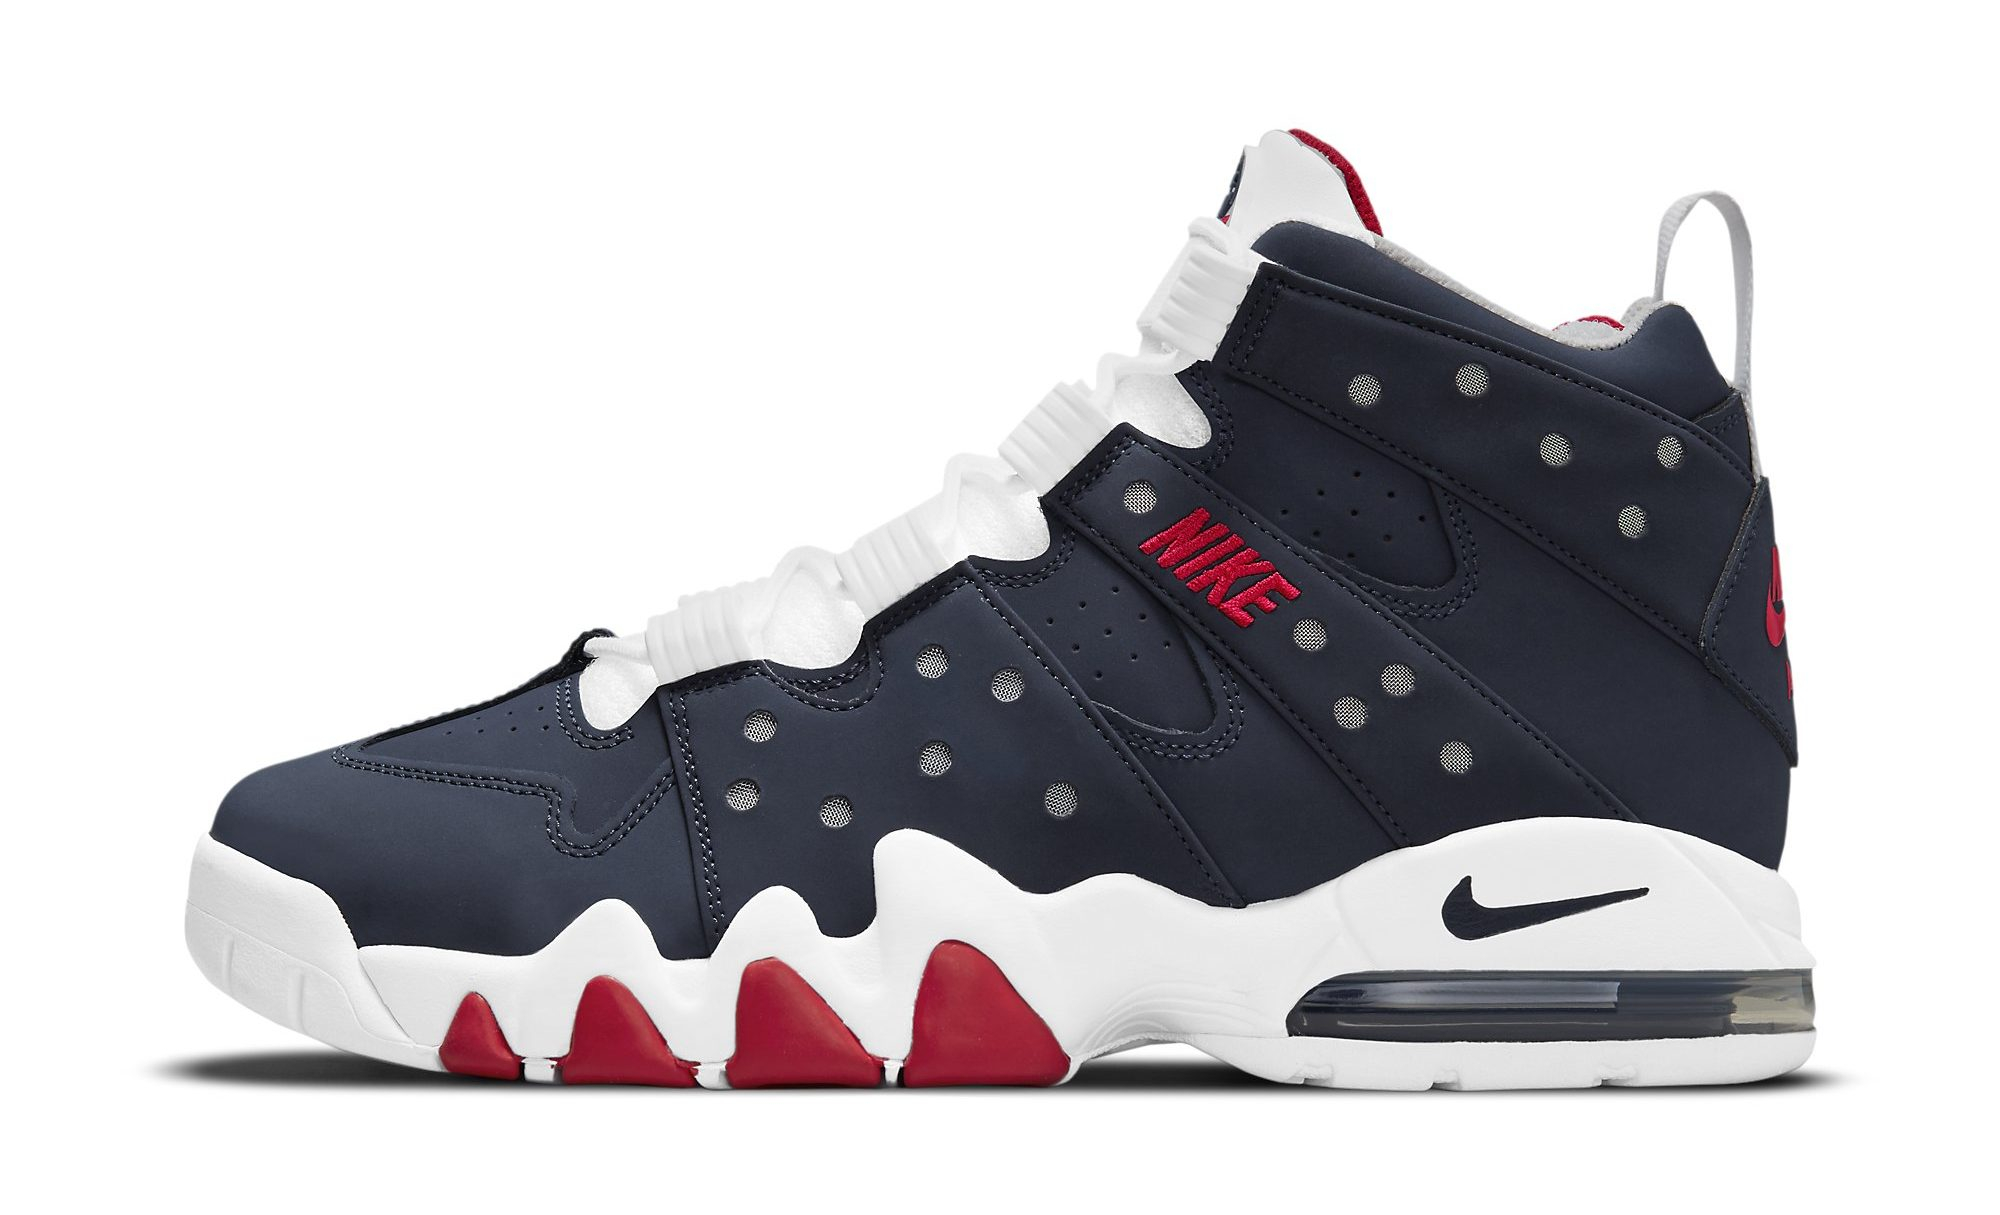 Nike Air Max2 CB '94 'USA' Release Info: Here's How to Buy a Pair ...